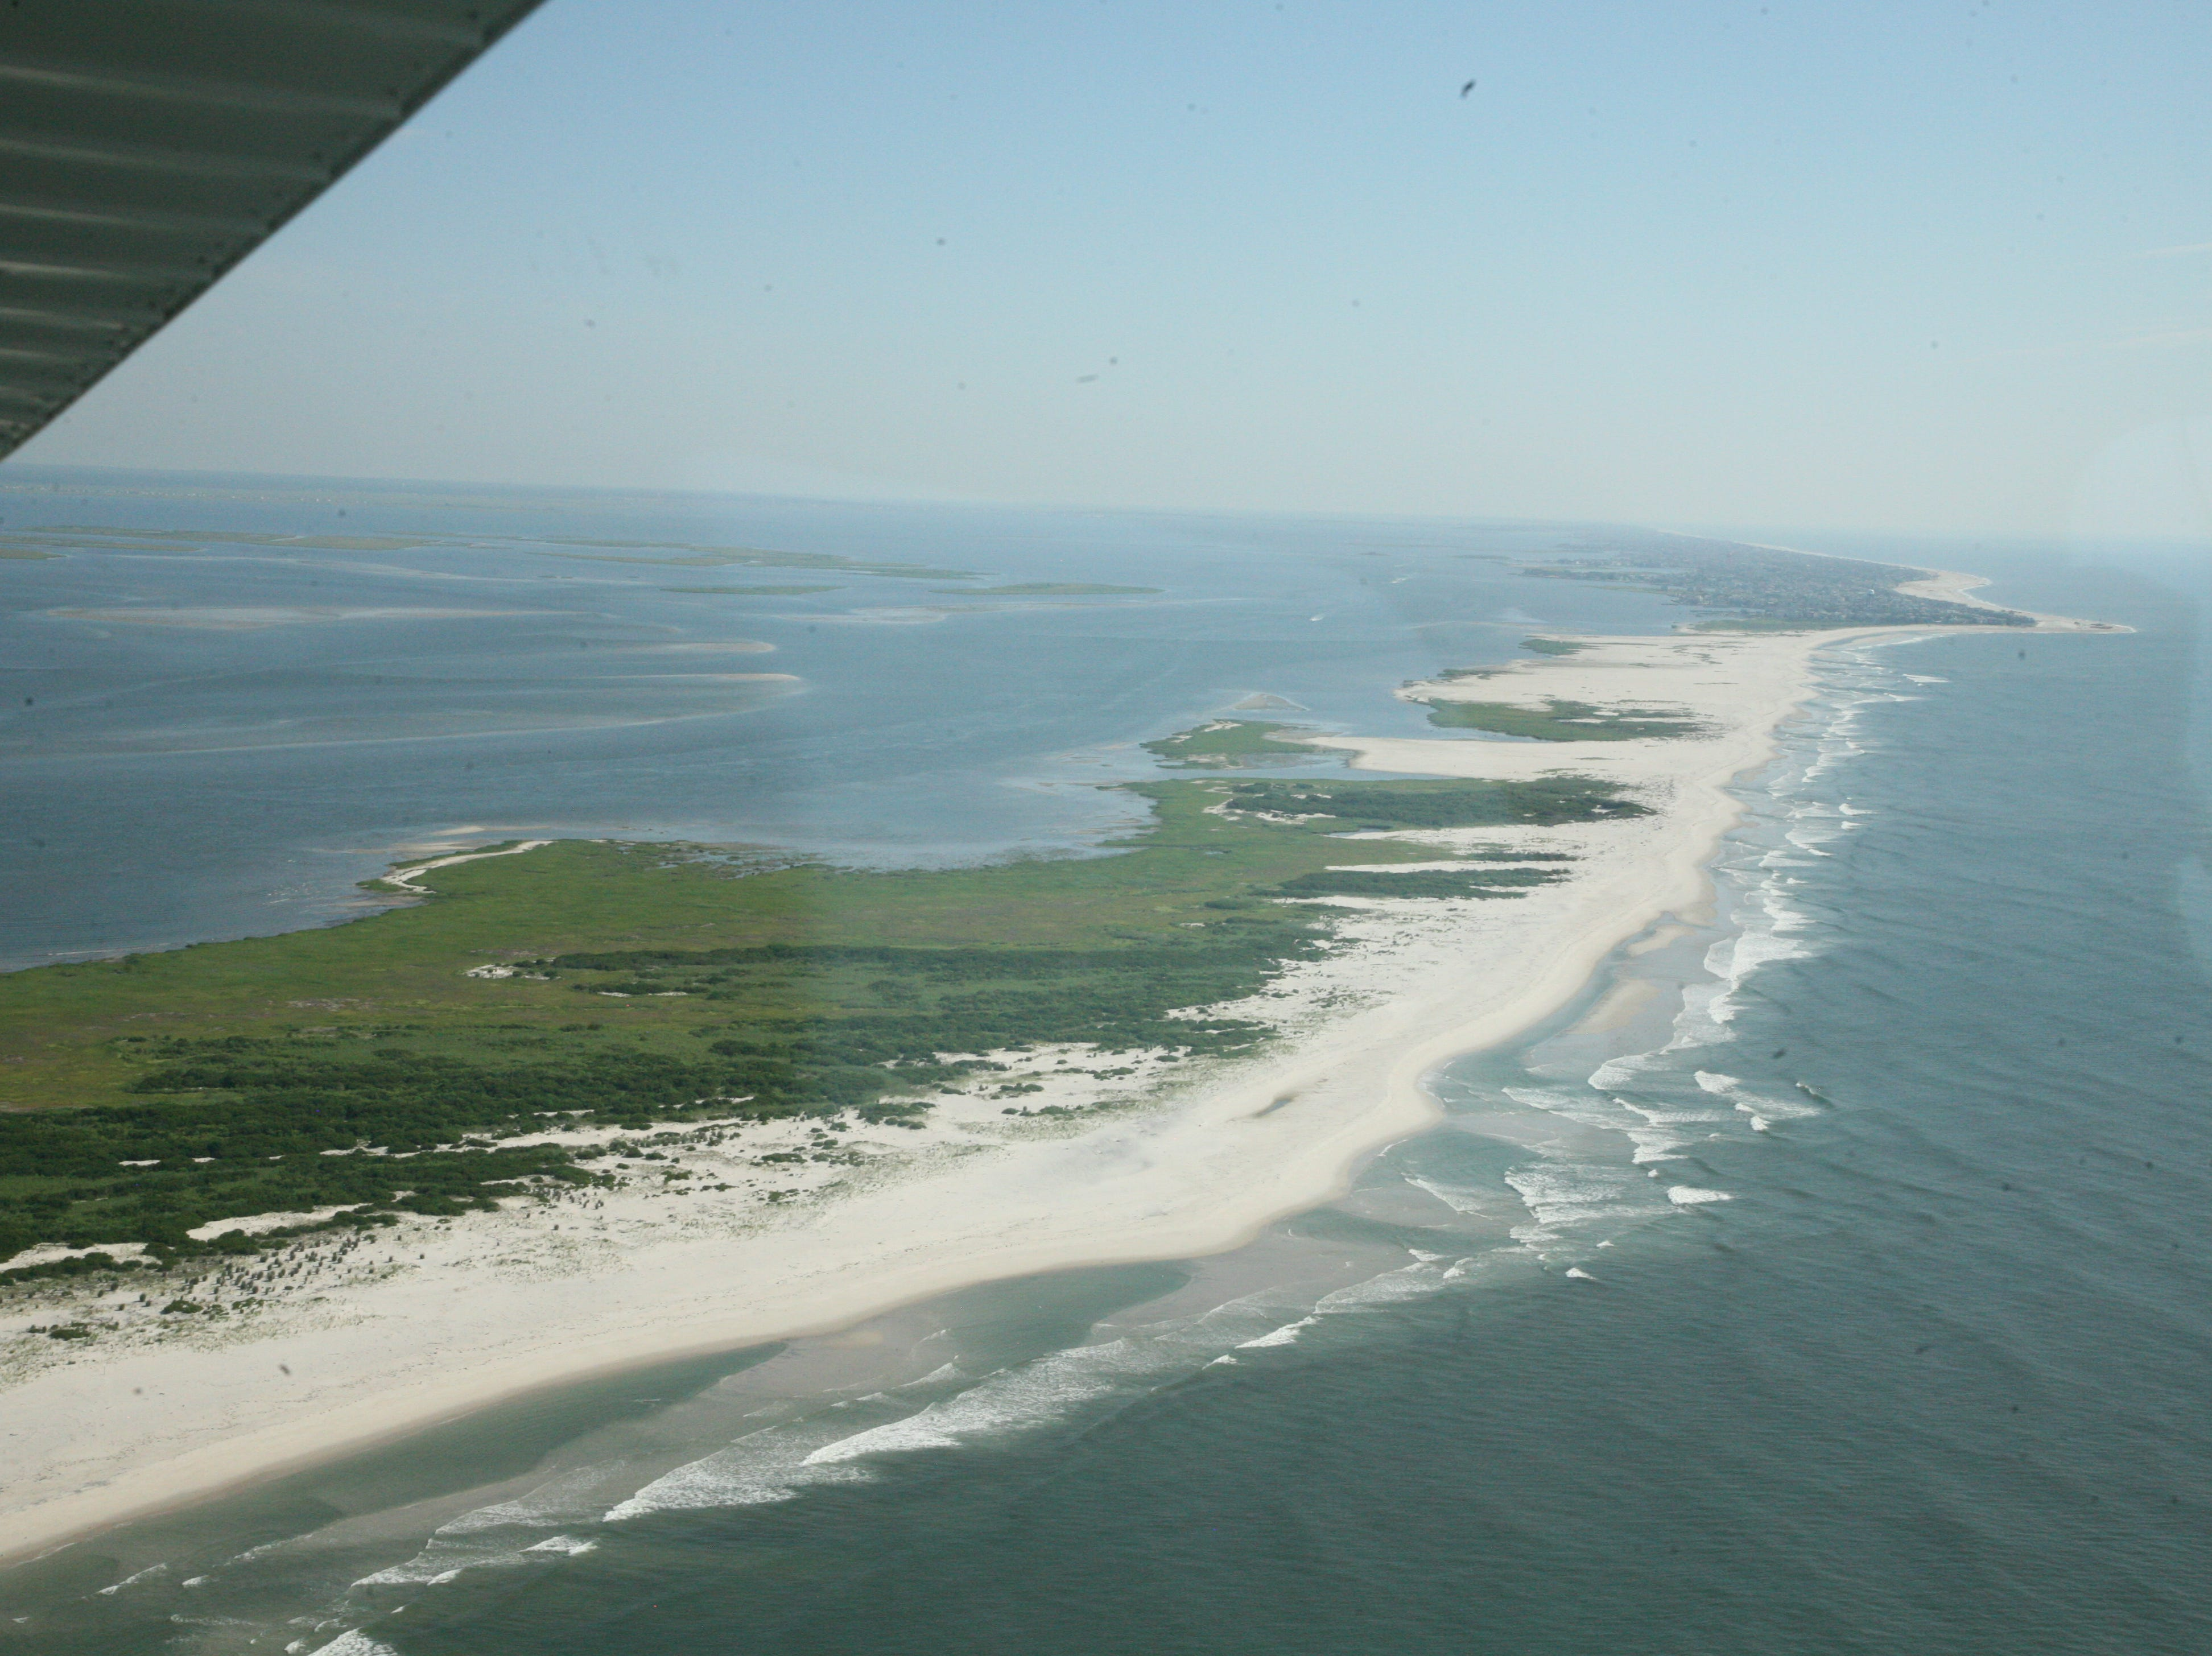 The southern end of Long Beach Island with Holgate and Beach Haven to the north.